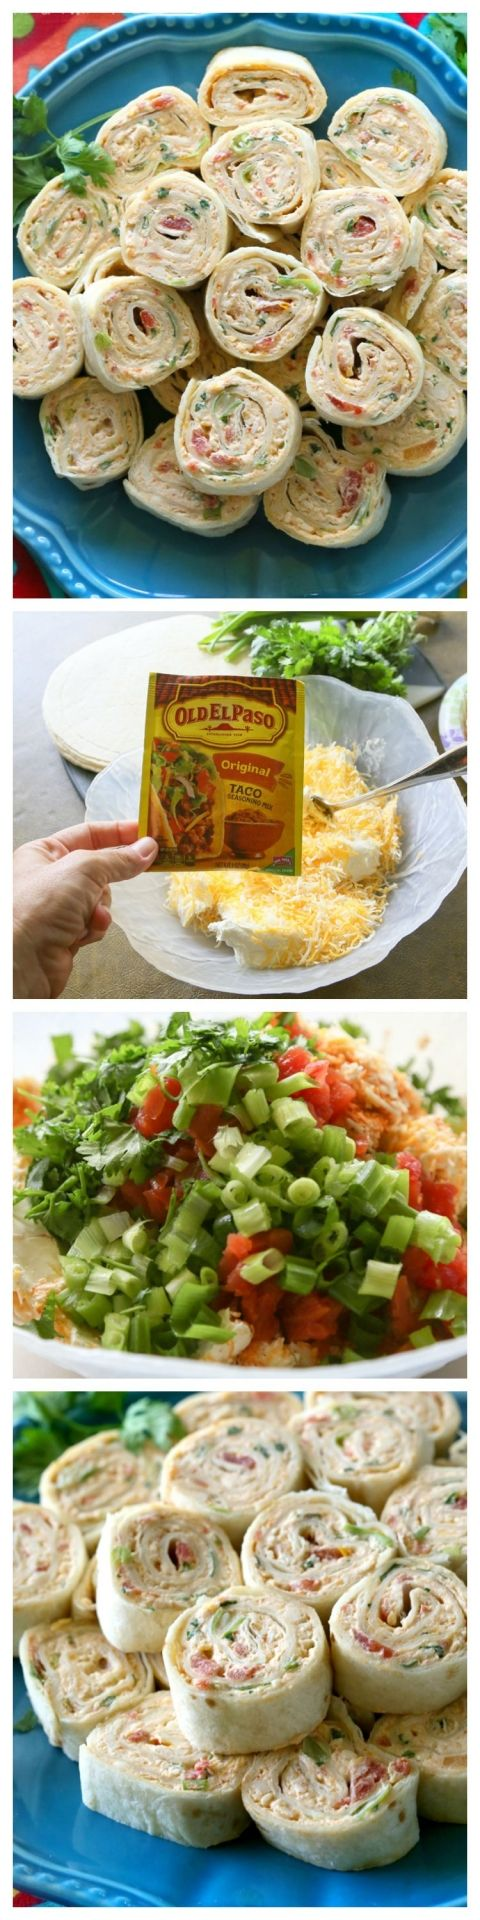 These Chicken Enchilada Roll Ups are a great appetizer or pack & go lunch idea! Easy to make ahead and easy to serve.